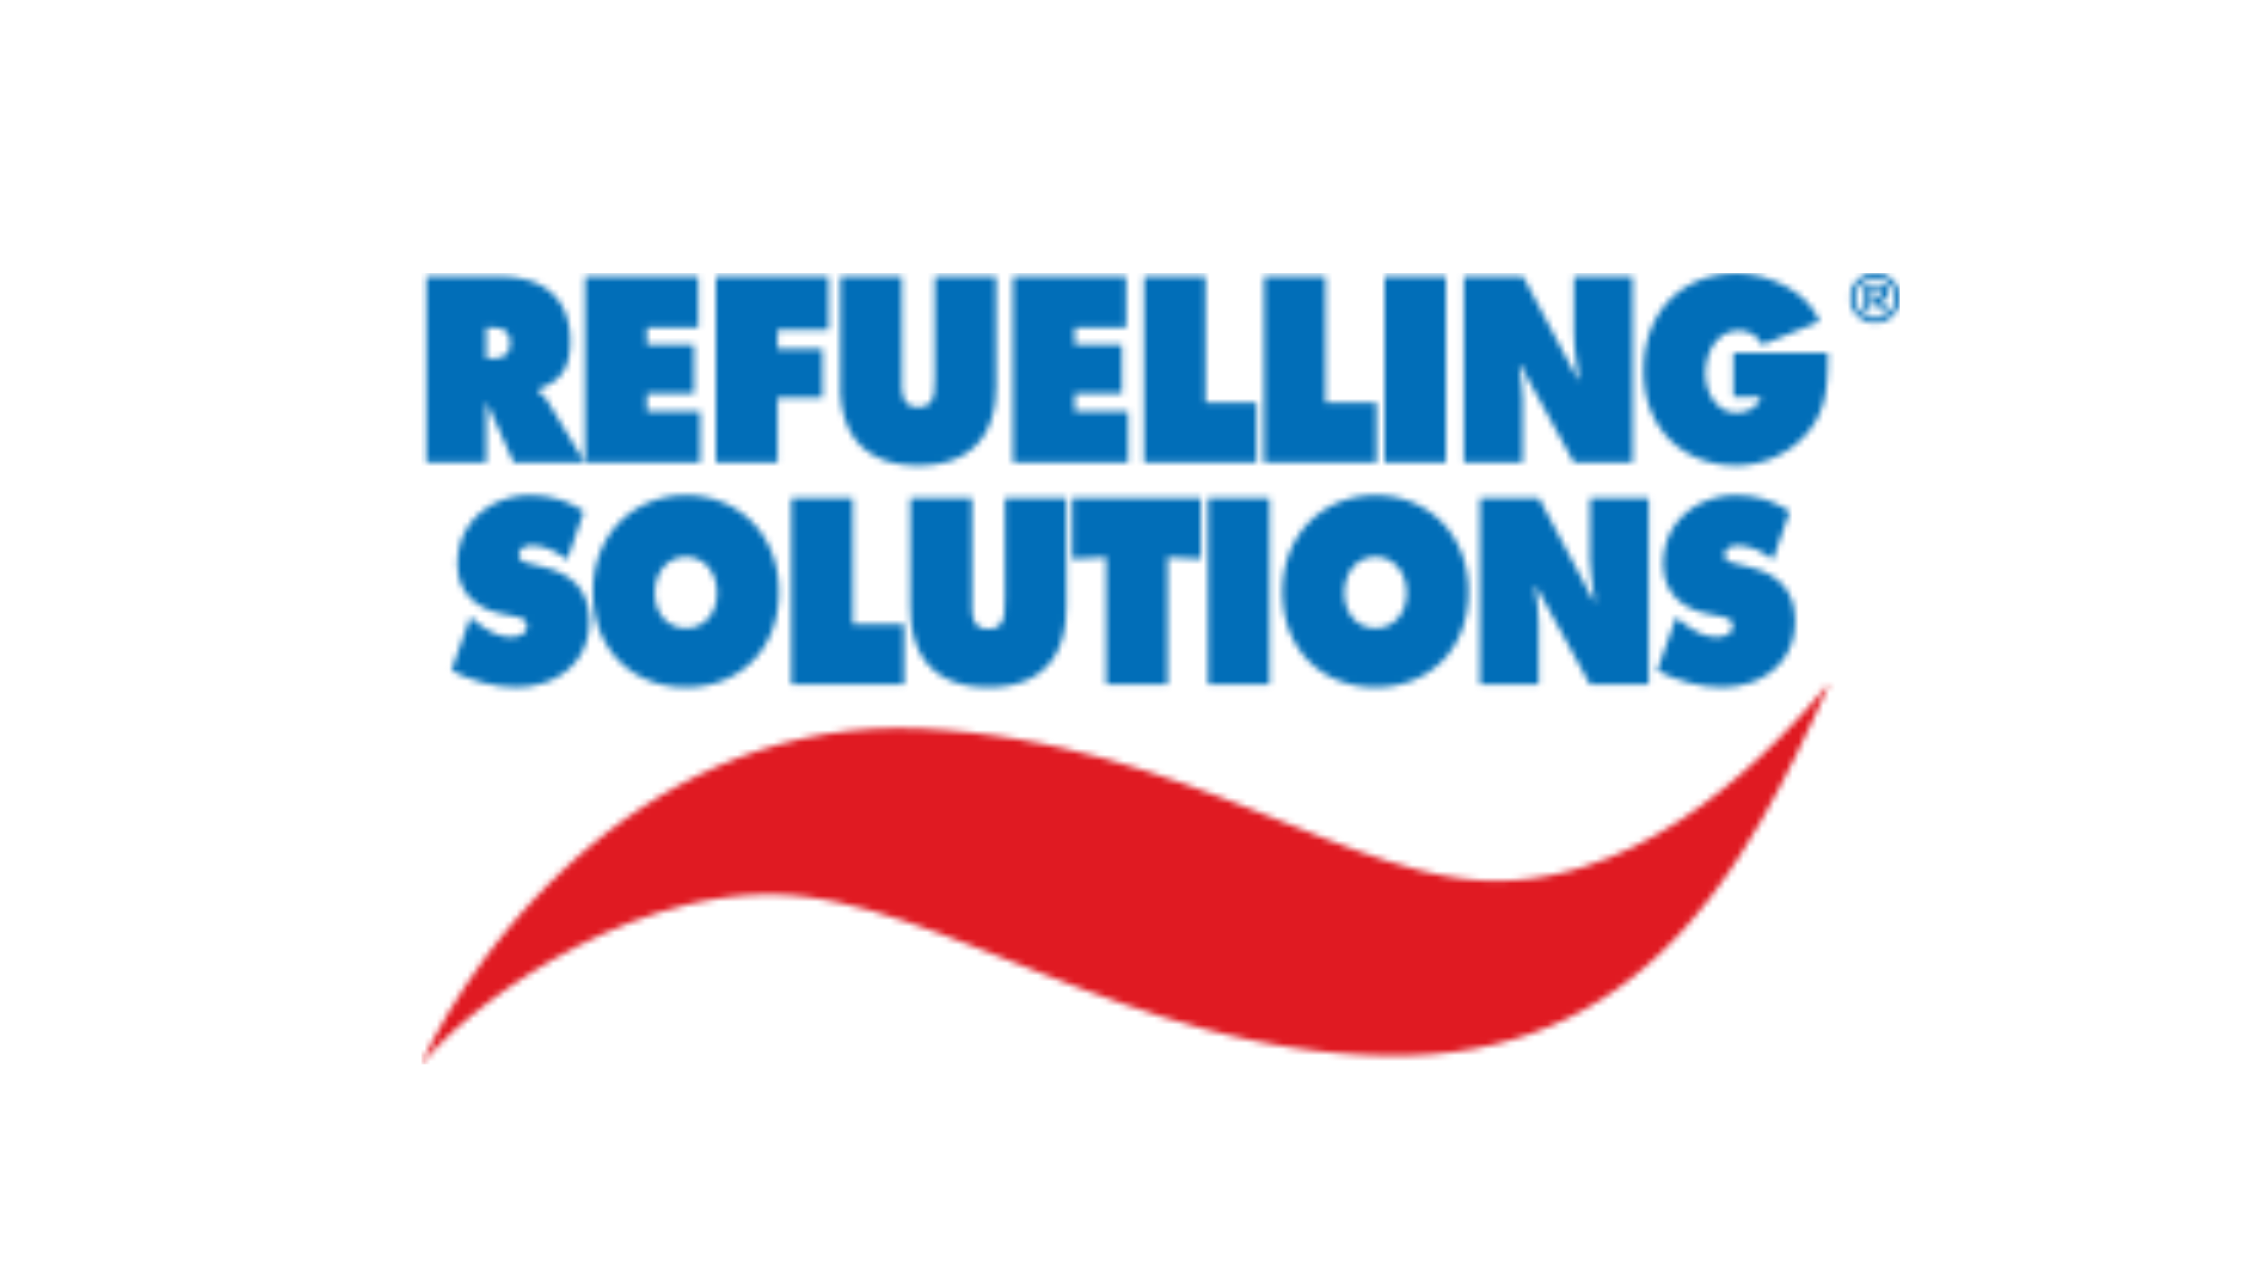 Refuelling Solutions (Screen)